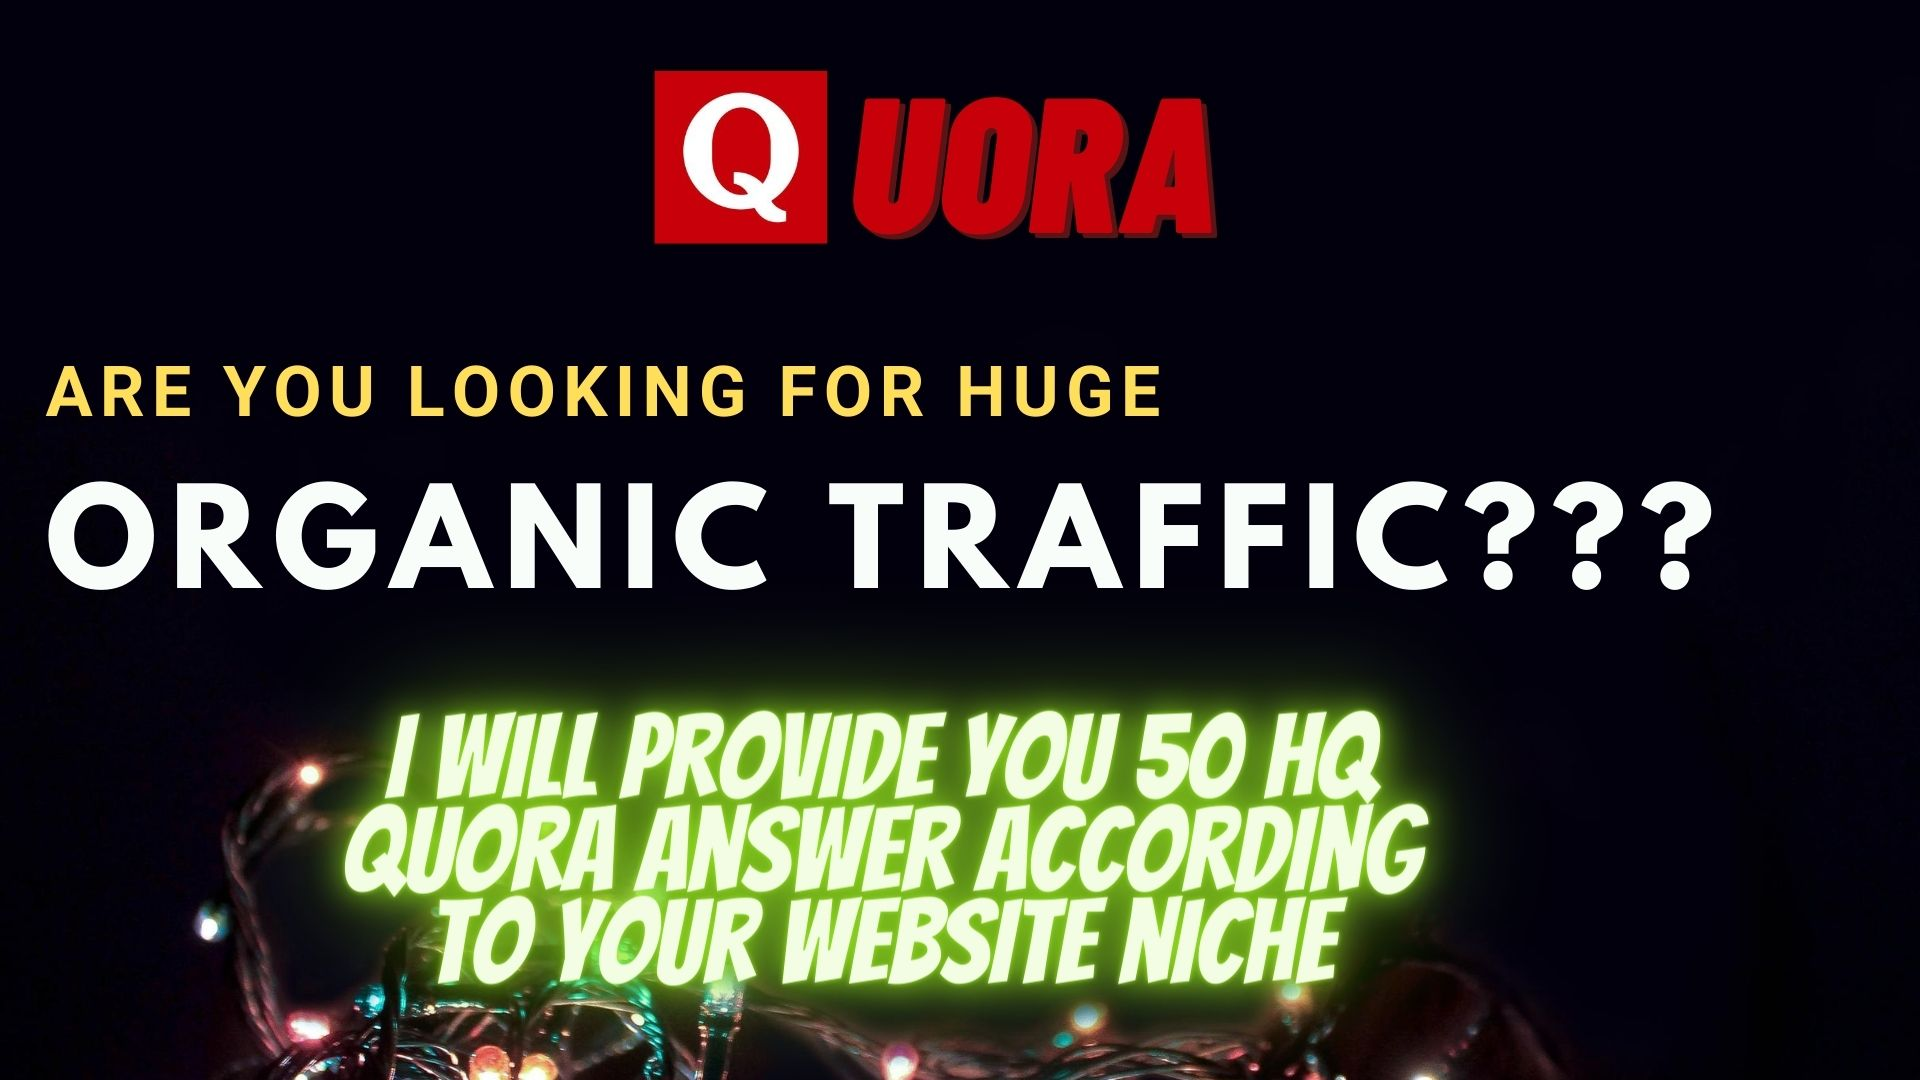 Get 50 HQ Quora answers with your backlink and url